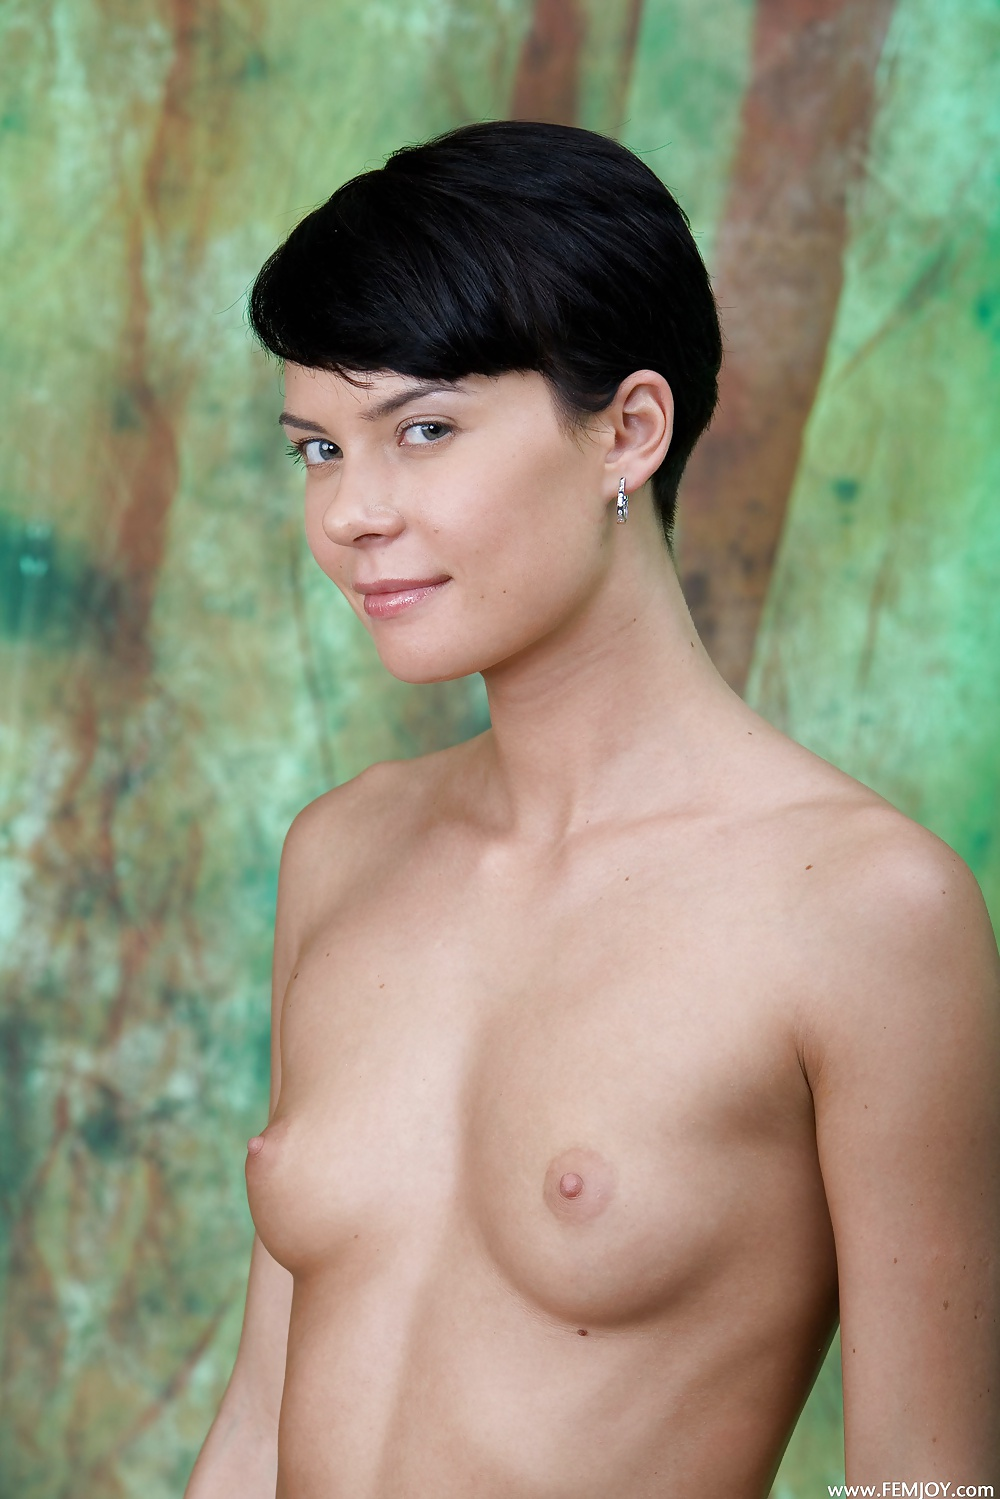 Short hair erotic galleries